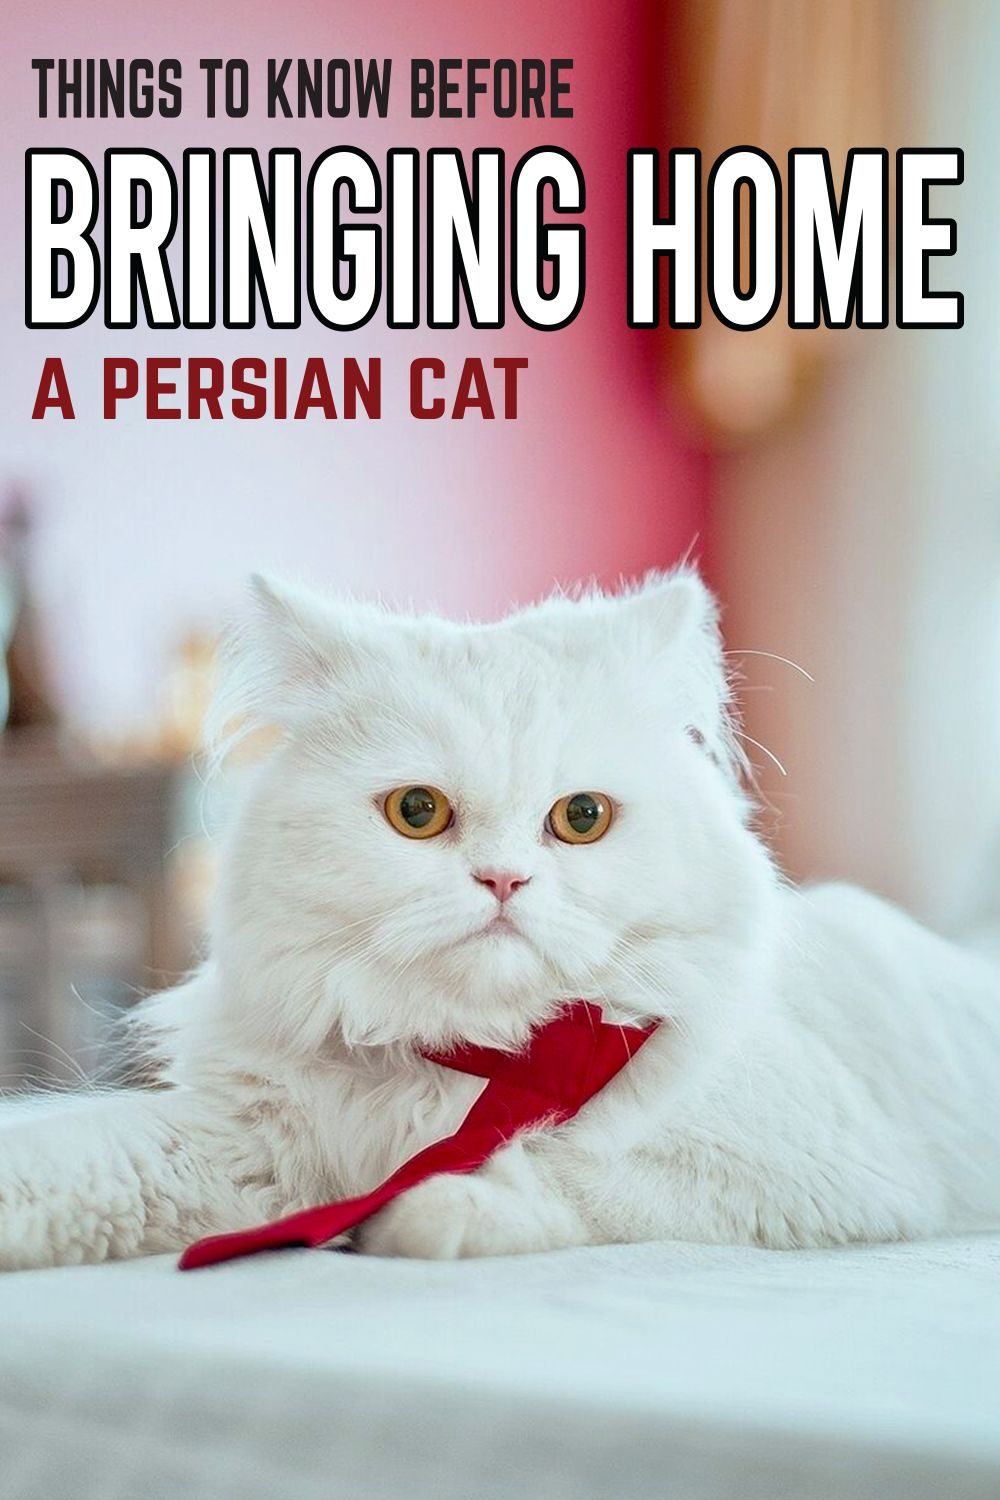 Things To Know Before Bringing Home a Persian Cat in 2020